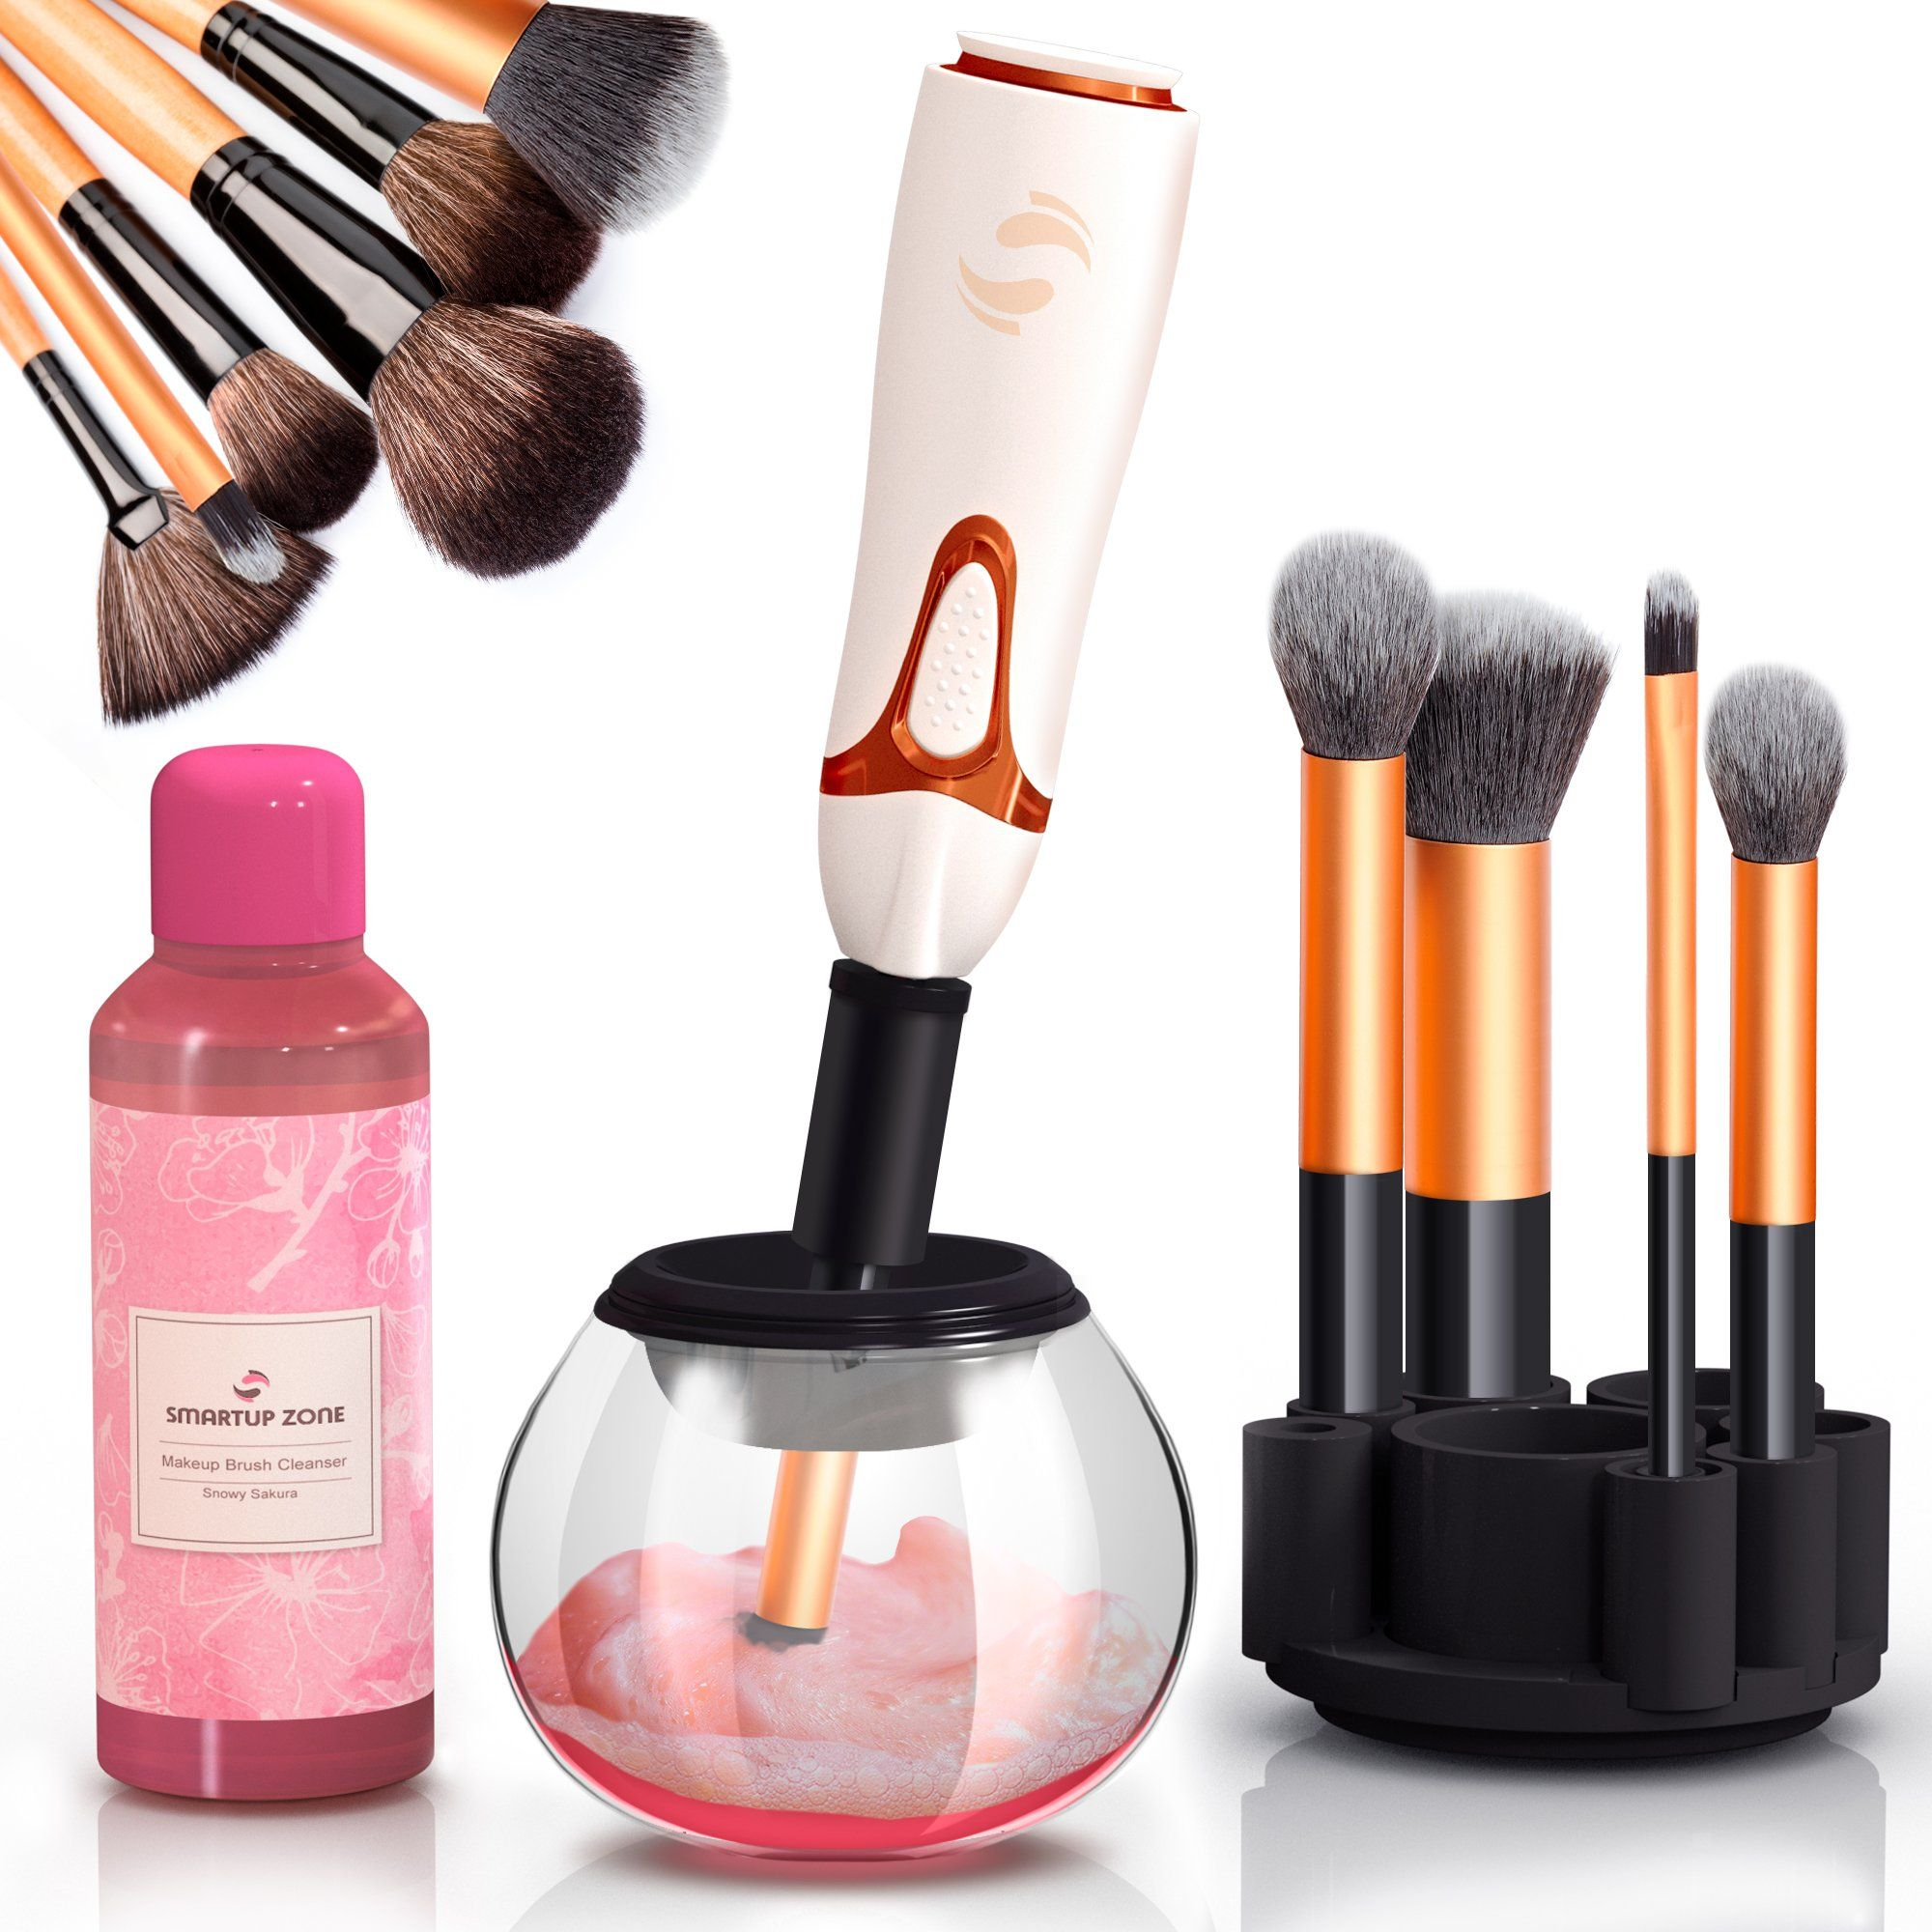 Professional Makeup Brush Cleaner Automatic Spin Makeup